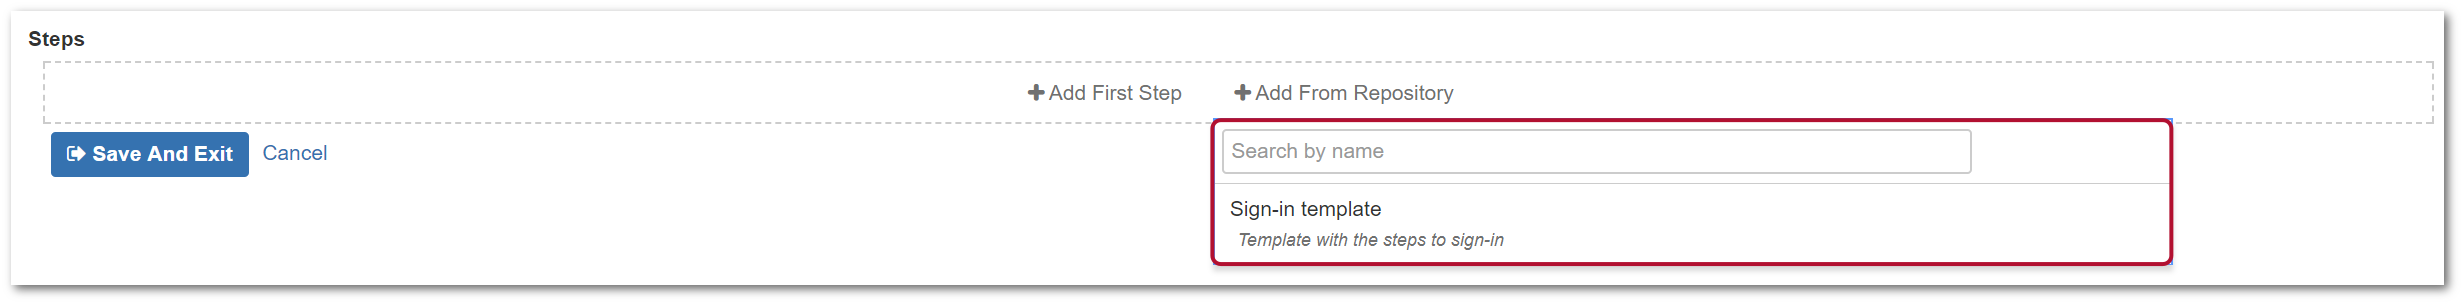 TestFLO Cloud: Adding Steps from repository